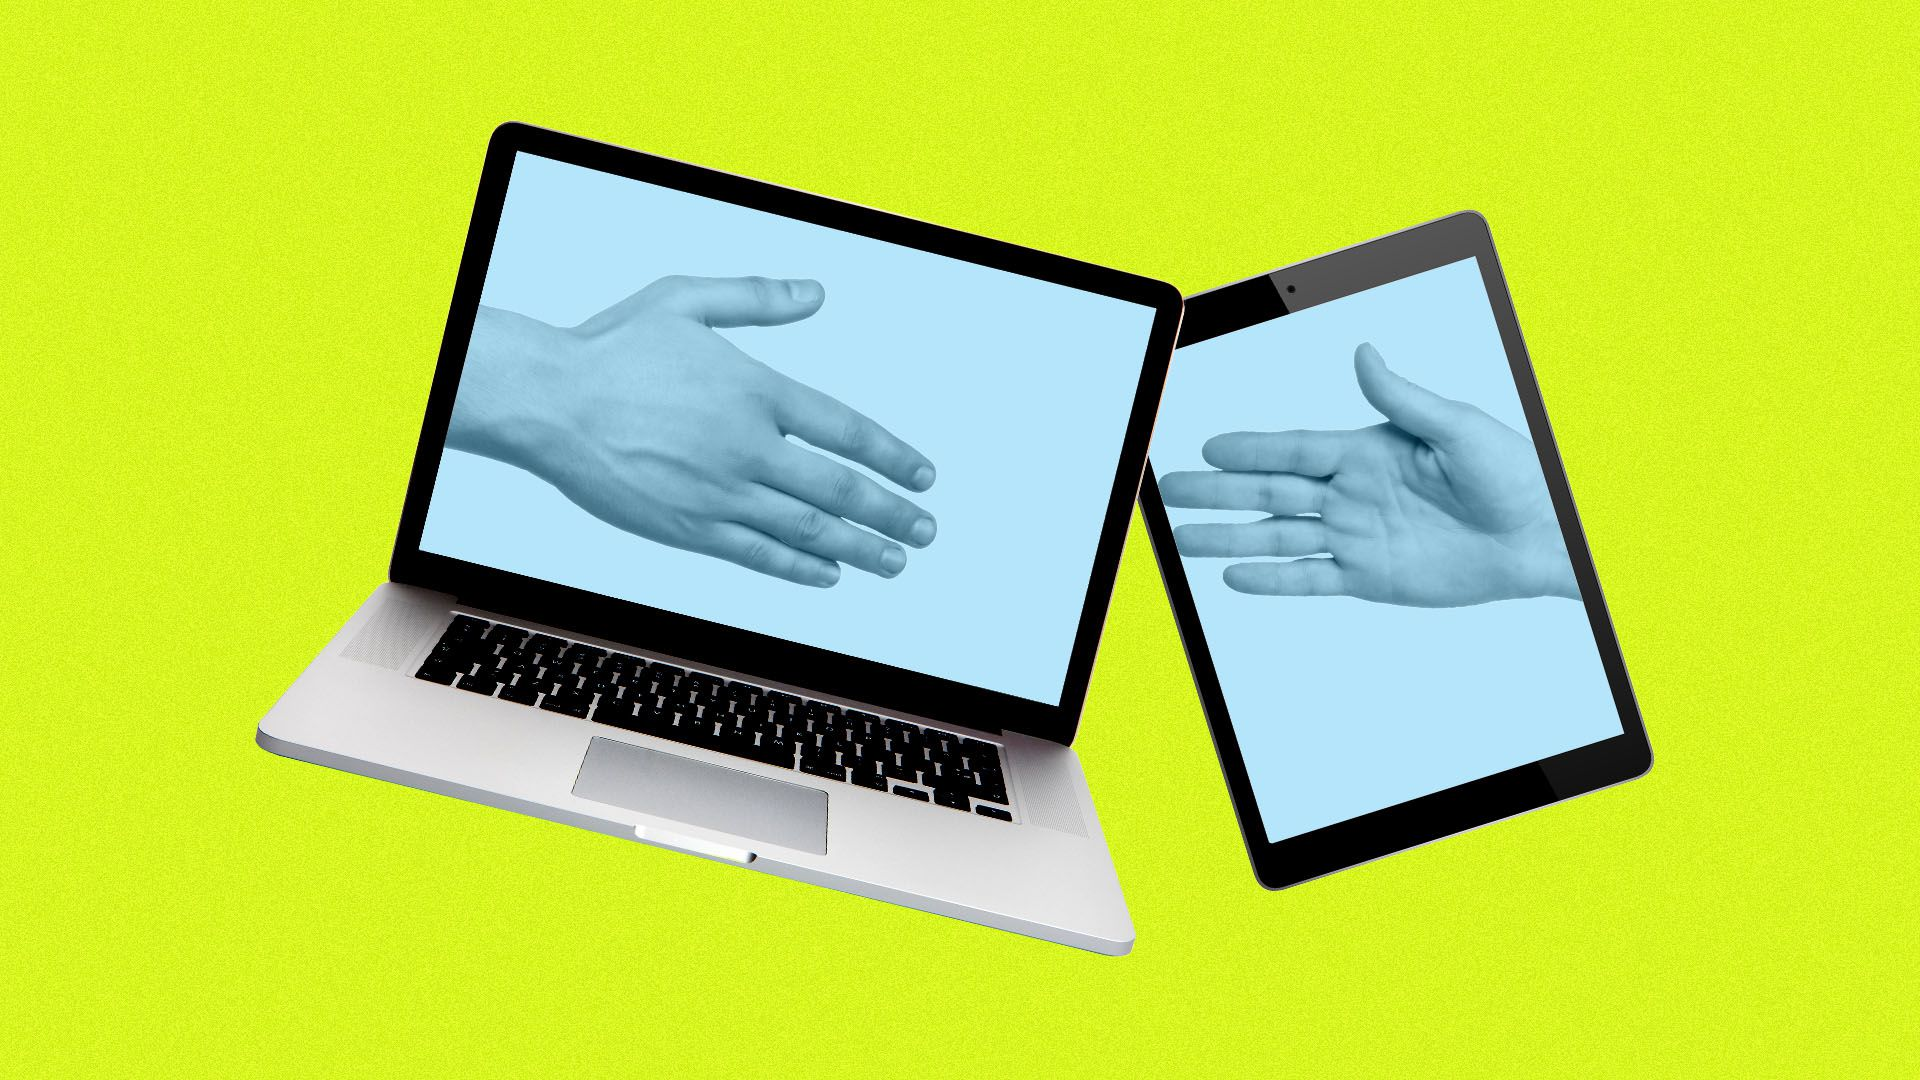 Illustration of a Mac laptop and an IPad with hands reaching to clasp.